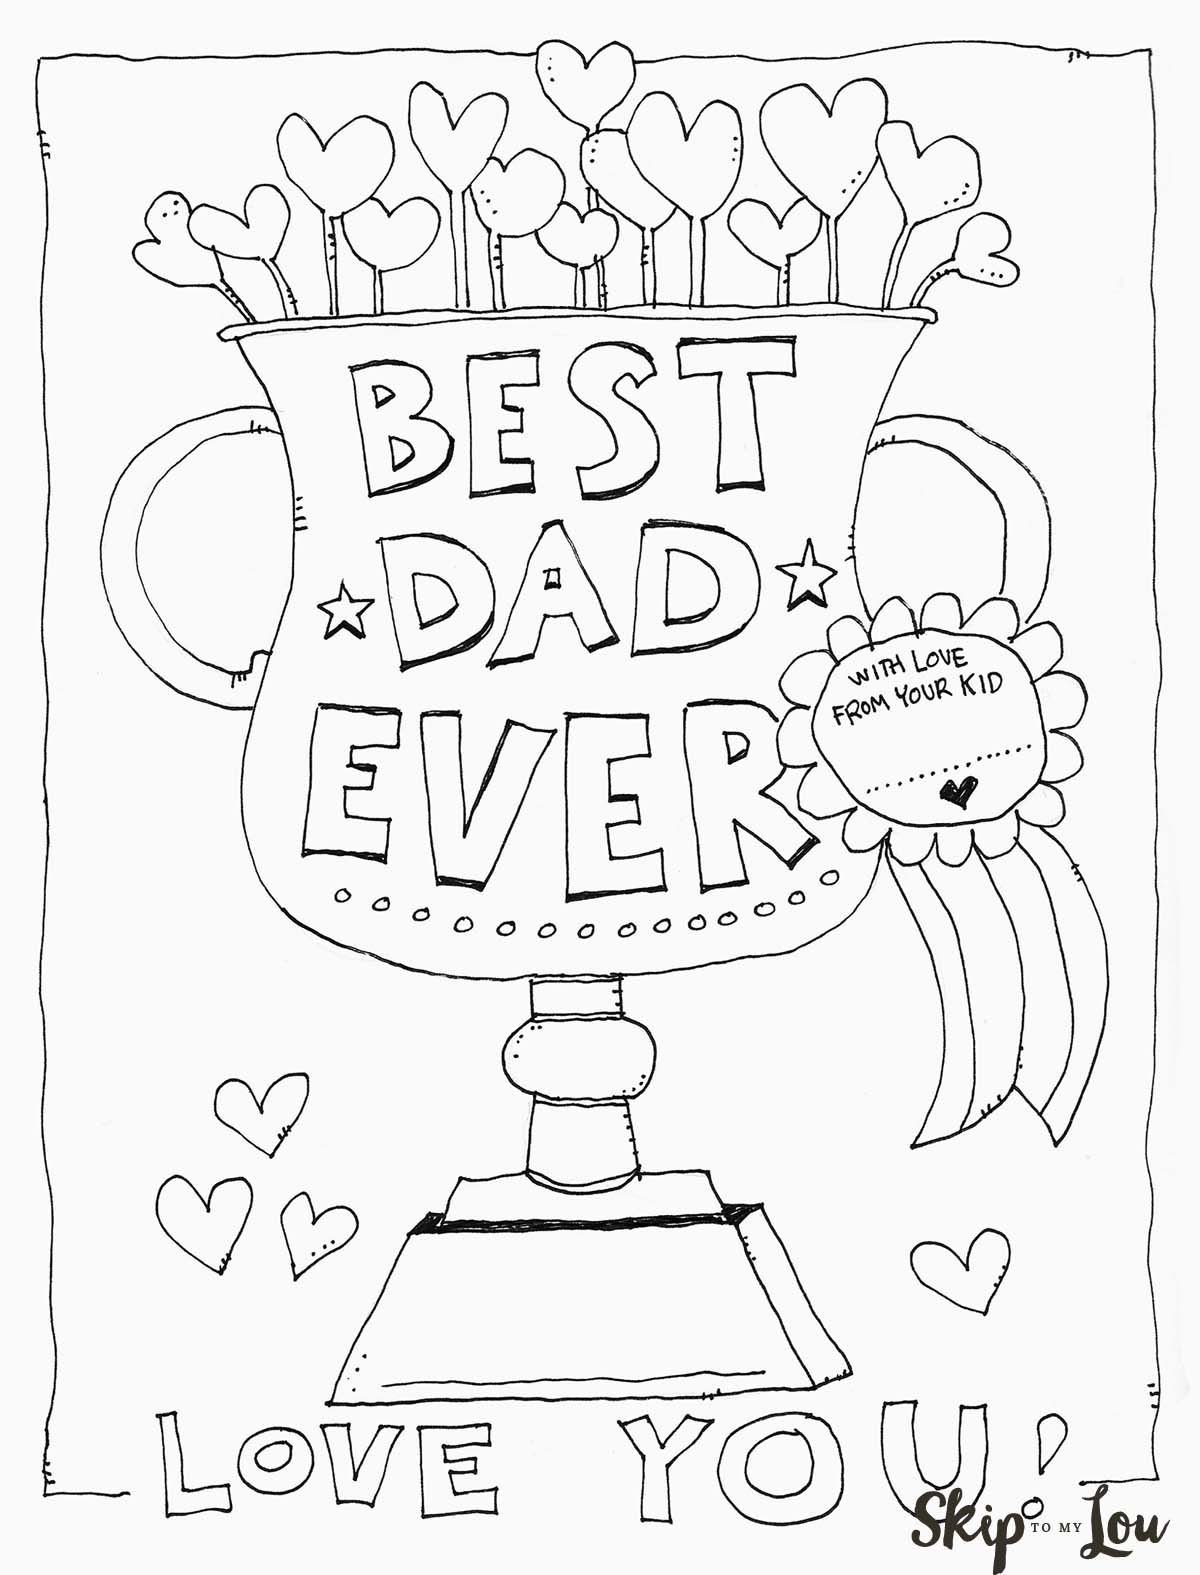 Best ideas about Fathers Day Coloring Pages For Kids . Save or Pin Dad Coloring Page Father s Day Now.